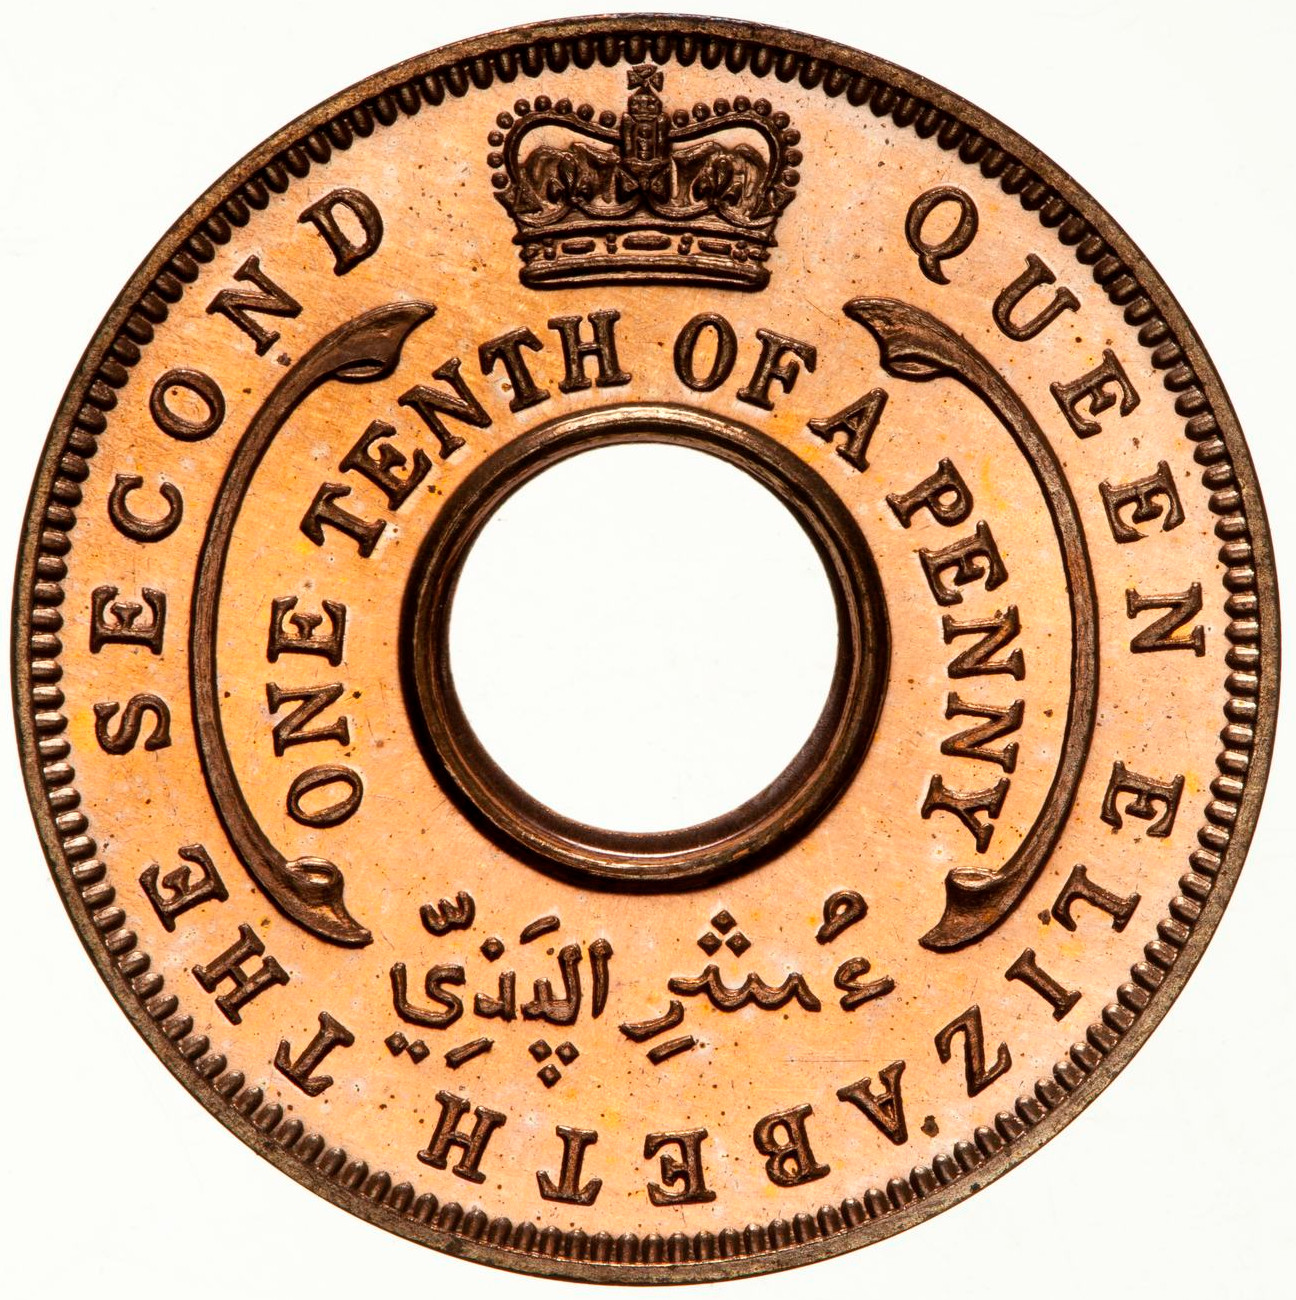 One-tenth Penny: Photo Proof Coin - 1/10 Penny, British West Africa, 1954